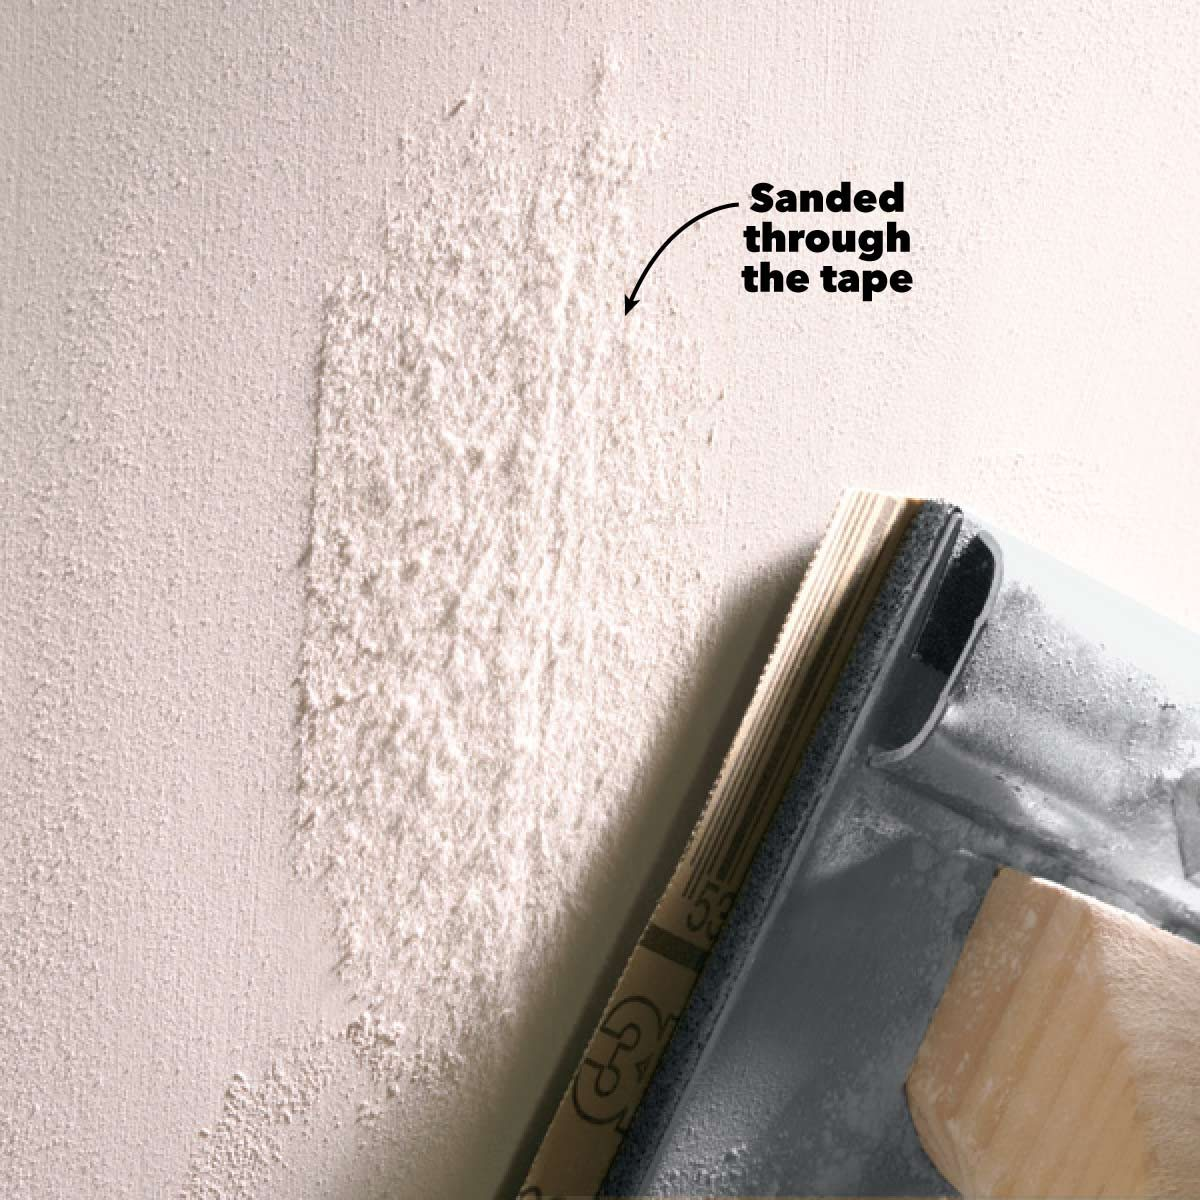 drywall sanding avoid over sanding